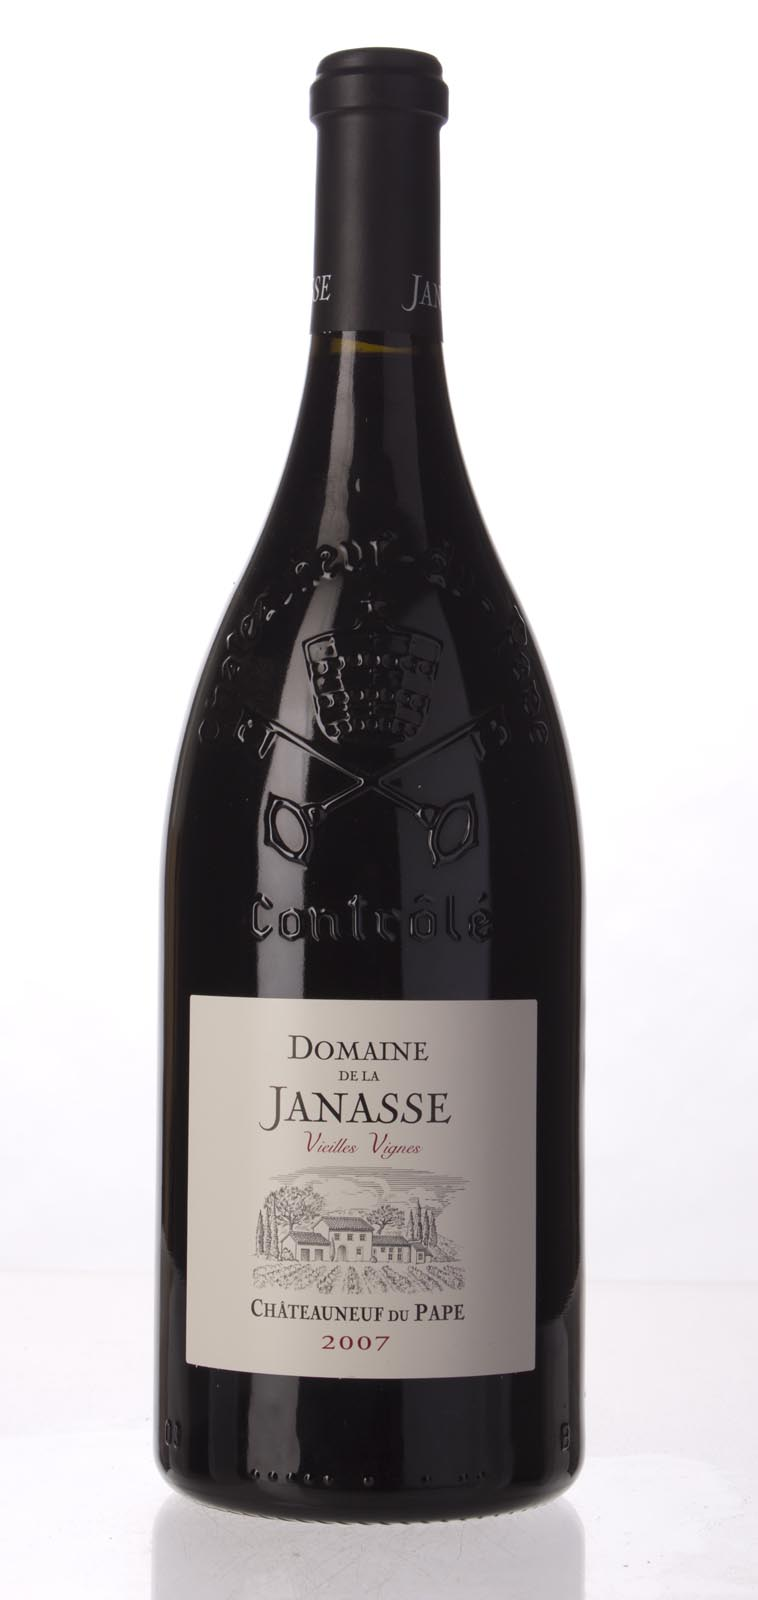 Domaine de la Janasse Chateauneuf du Pape Cuvee Vieilles Vignes 2007, 1.5L (WA100) from The BPW - Merchants of rare and fine wines.